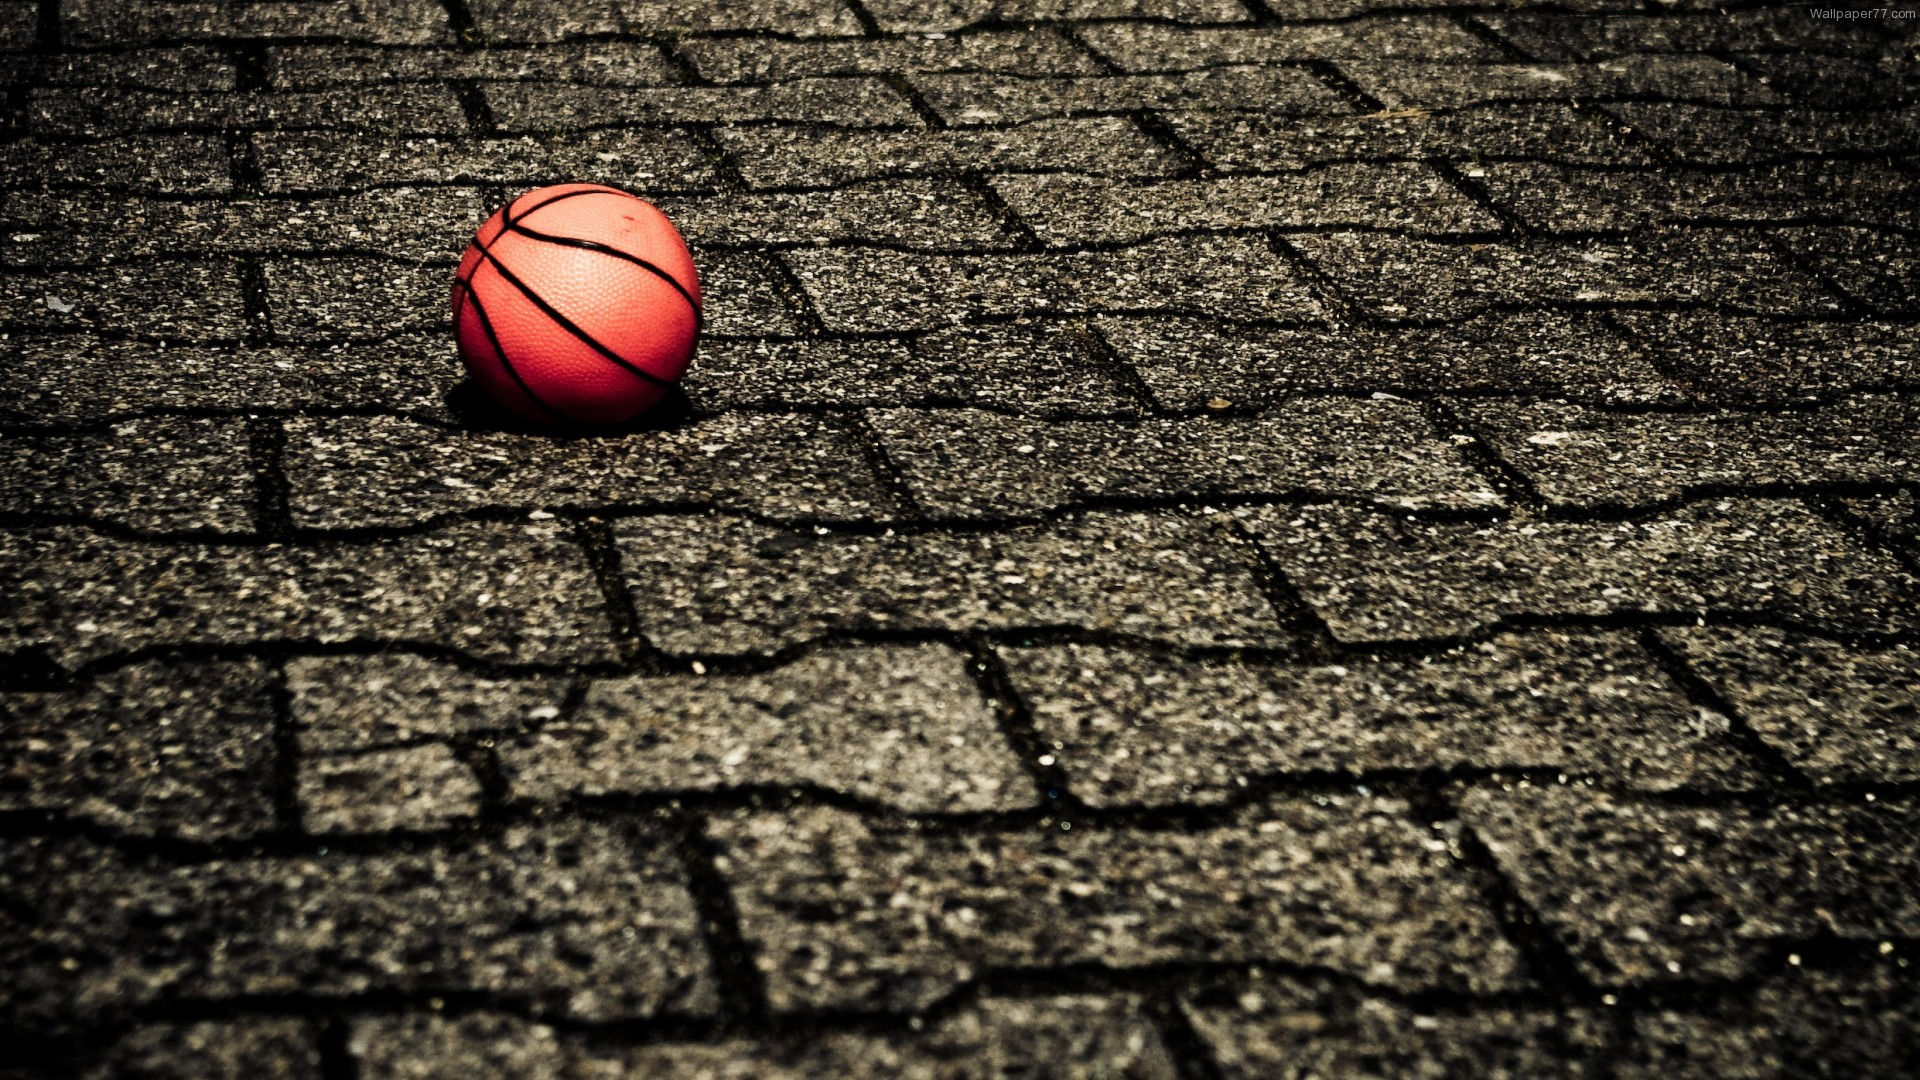 http://simplesmentejemi.blogspot.com/2014/05/basketball-wallpapers-hd.html